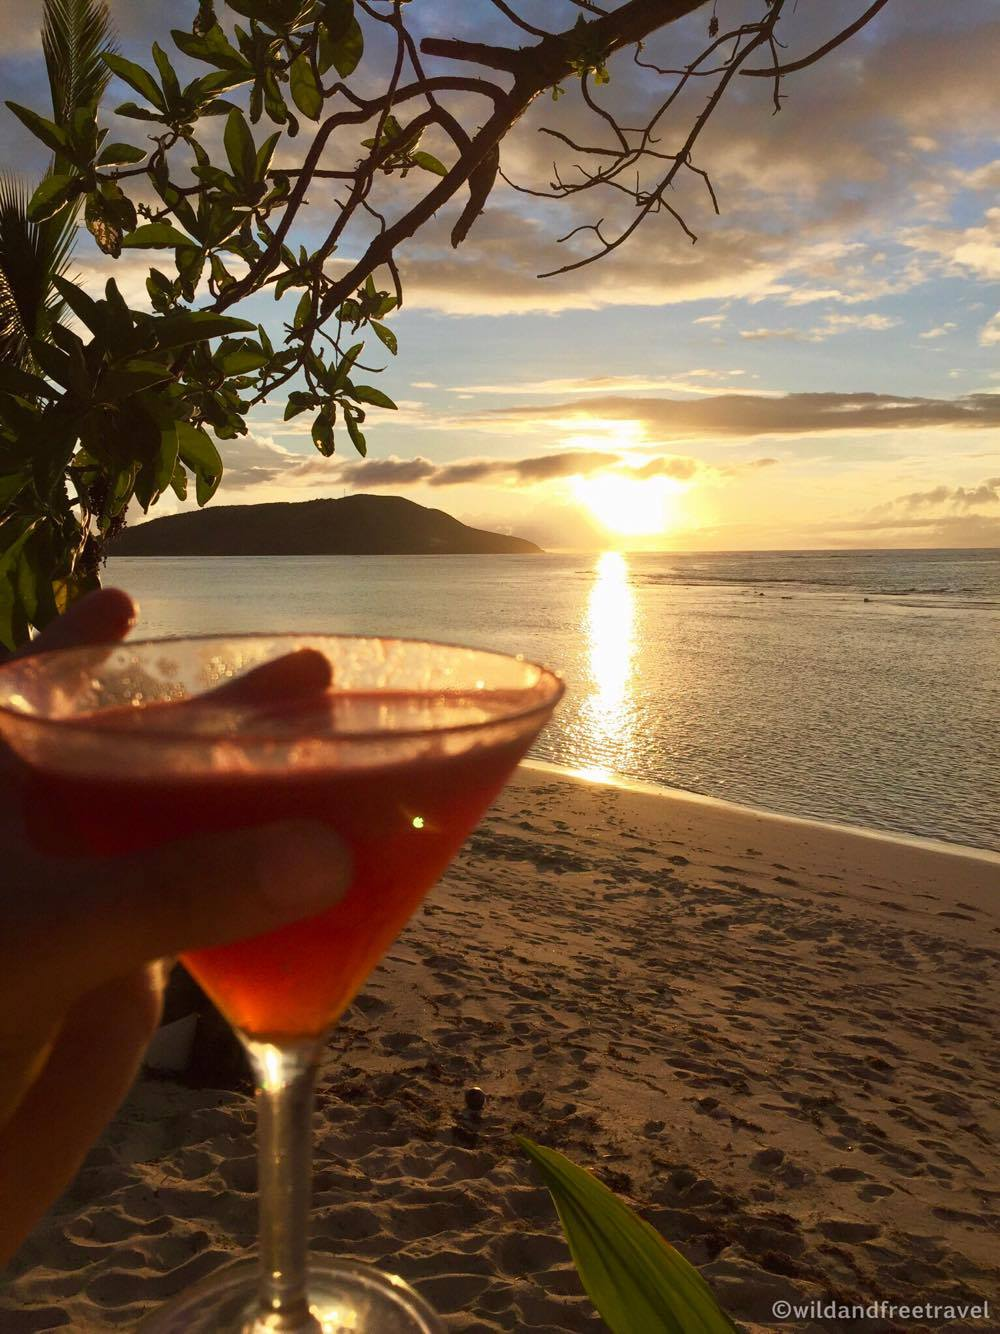 Cheers to sunset cocktails in Fiji <3